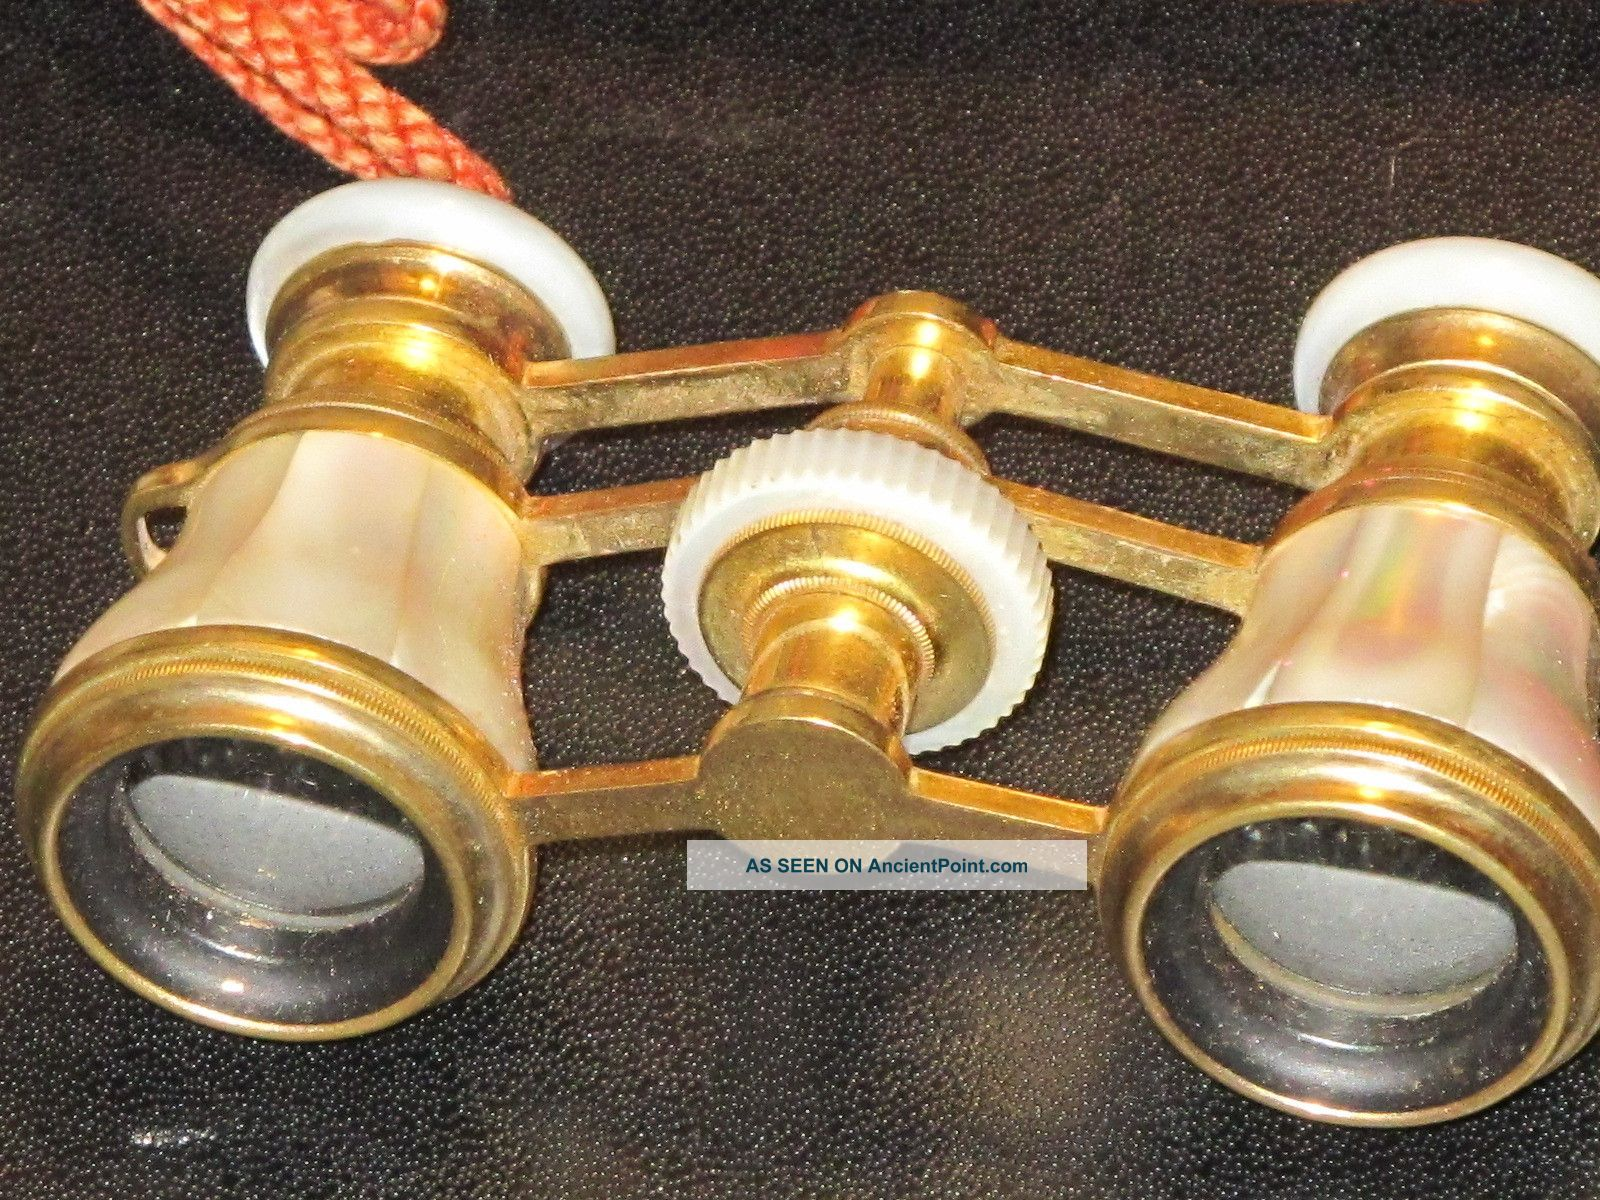 Rare Mint Jumelle Carpentier Opera Glasses Mother Of Pearl Flawless Condition Mc Optical photo